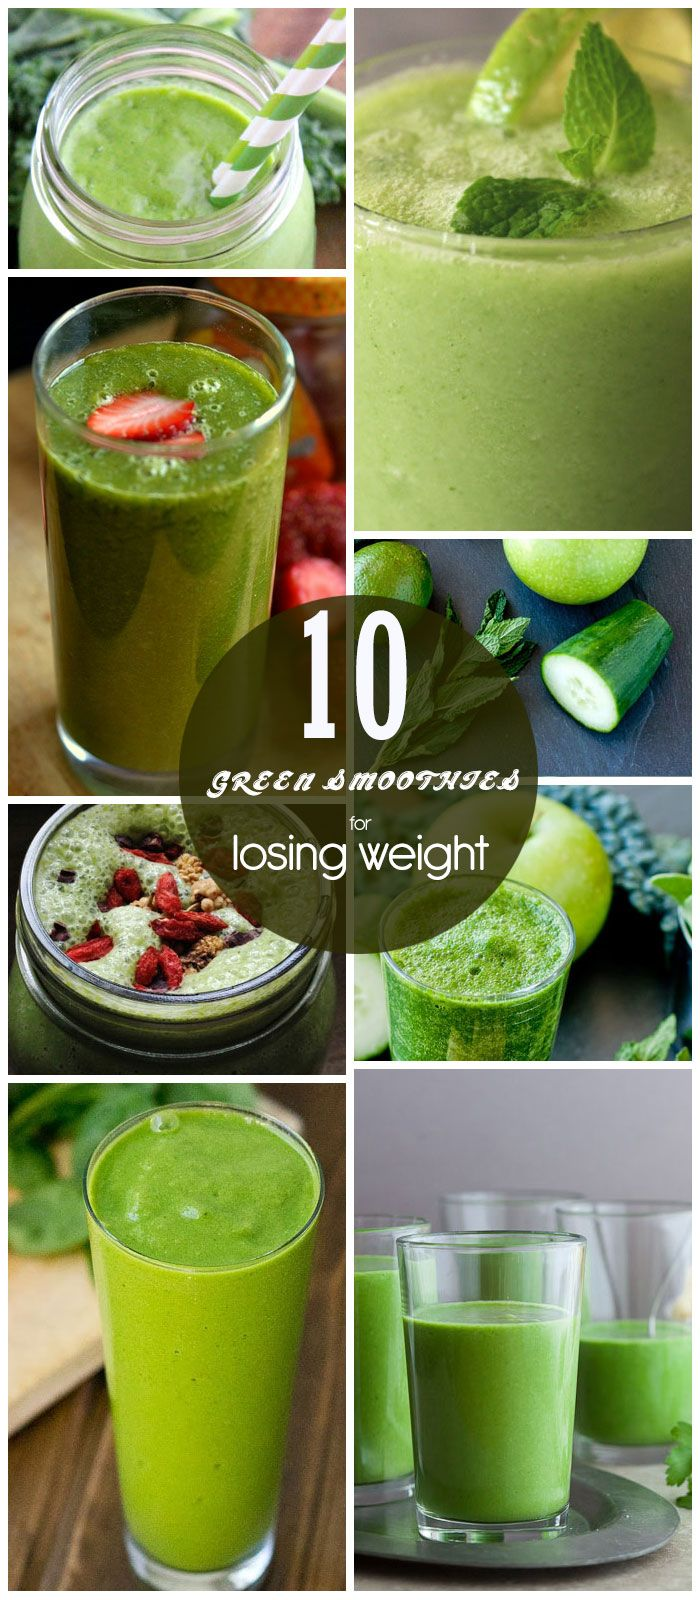 7 Delicious Green Smoothie Recipes for Weight Loss - I ordered a Nutribullet!